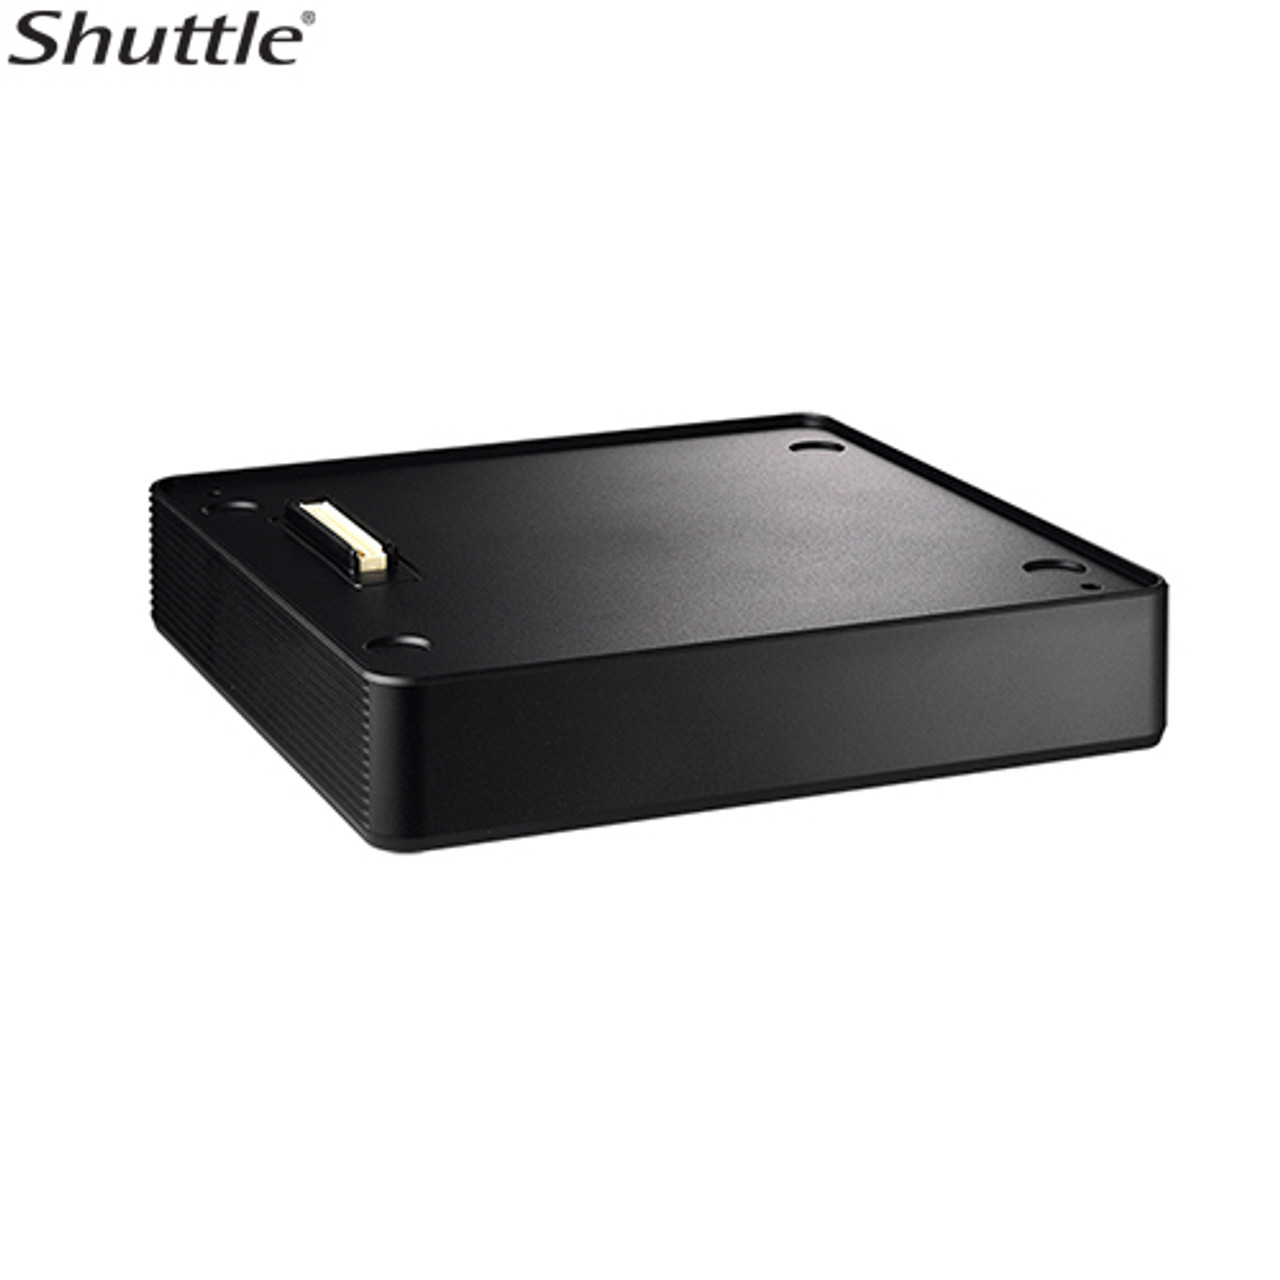 Product image for Shuttle NC01U Docking box-LAN*1/USB*2/SATA*1   CX Computer Superstore